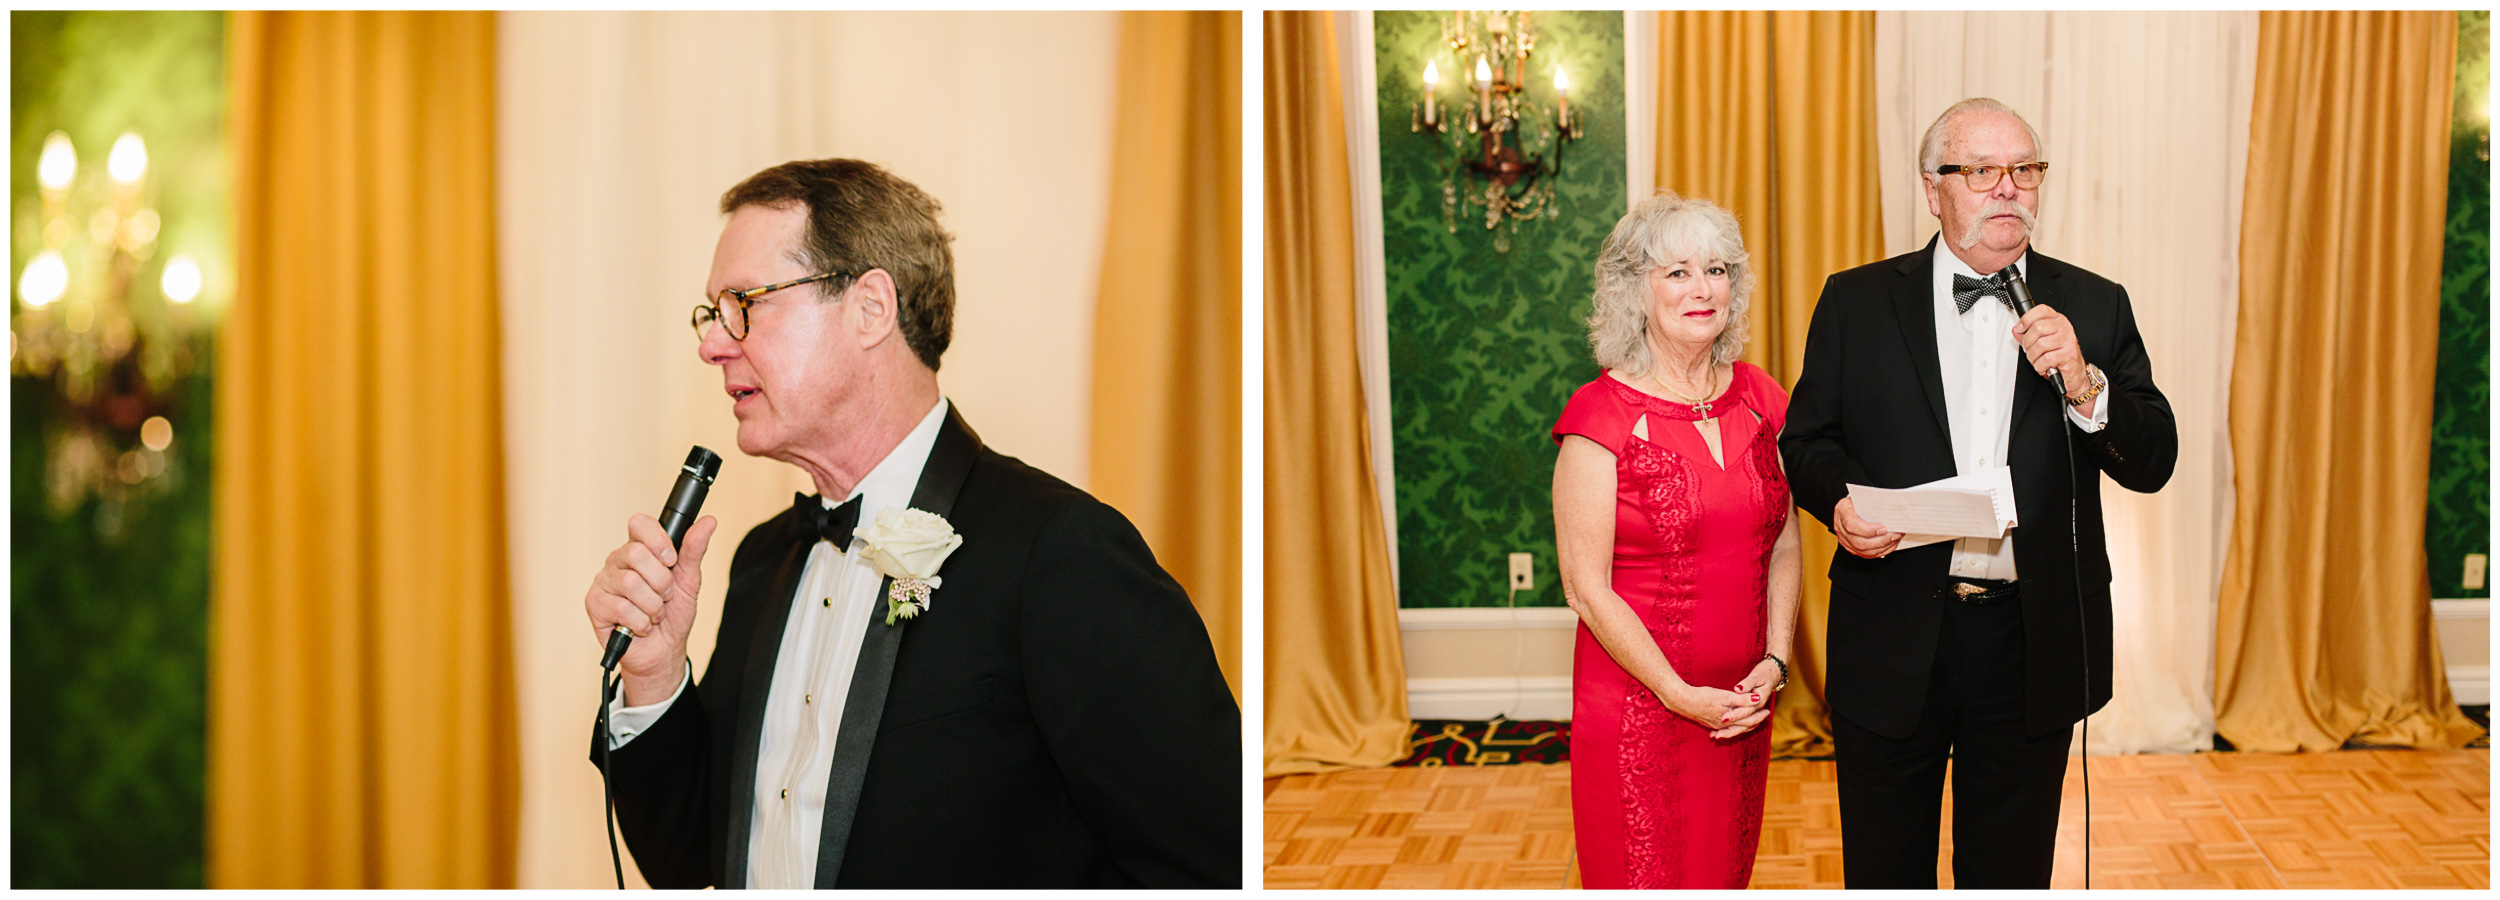 broadmoor_wedding_62.jpg